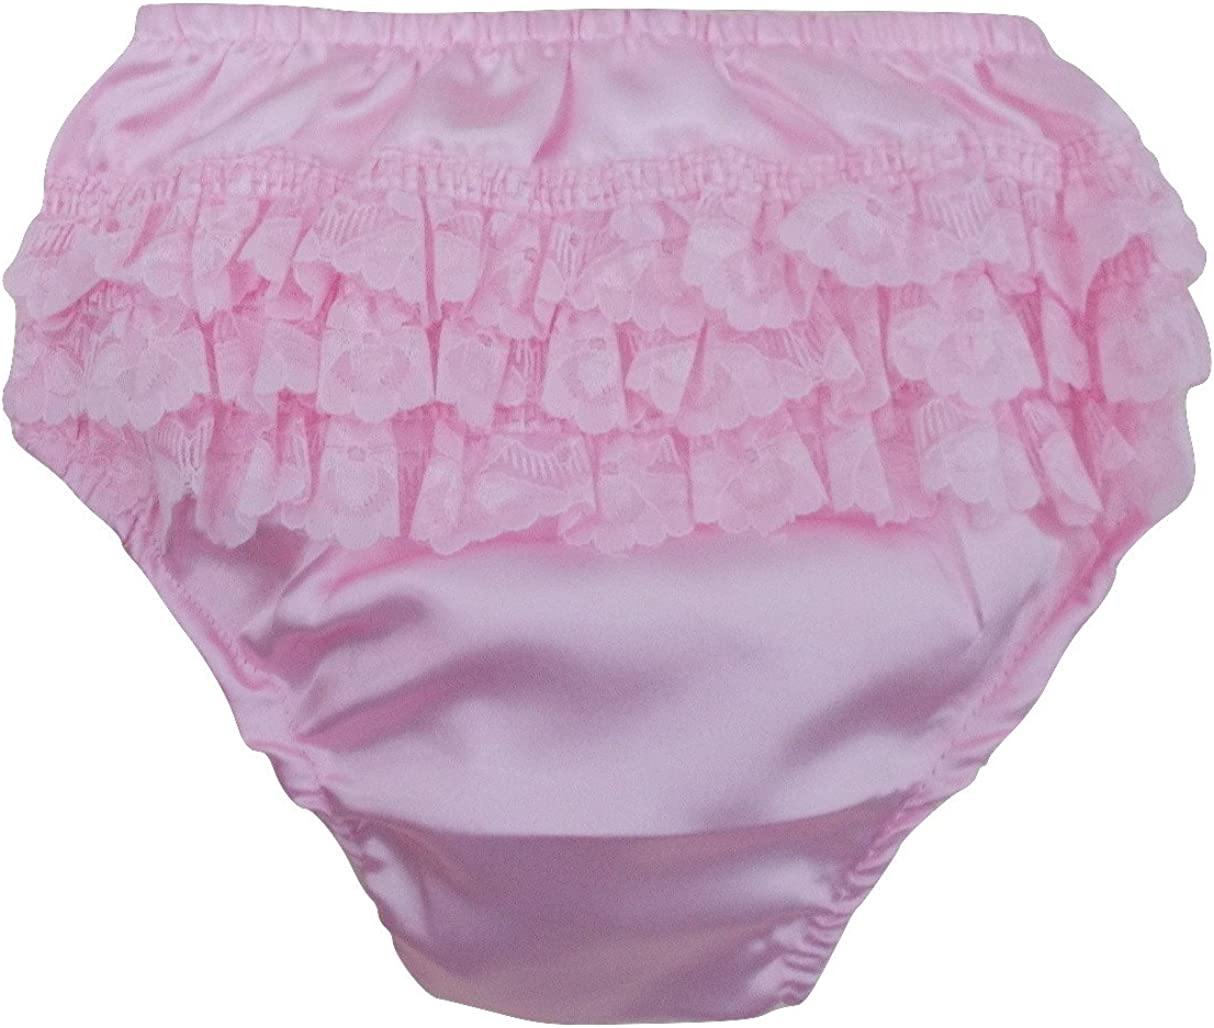 Baby Girls Romany Cotton Frilly Nappy Covering Pants White Satin Bow /& Lace